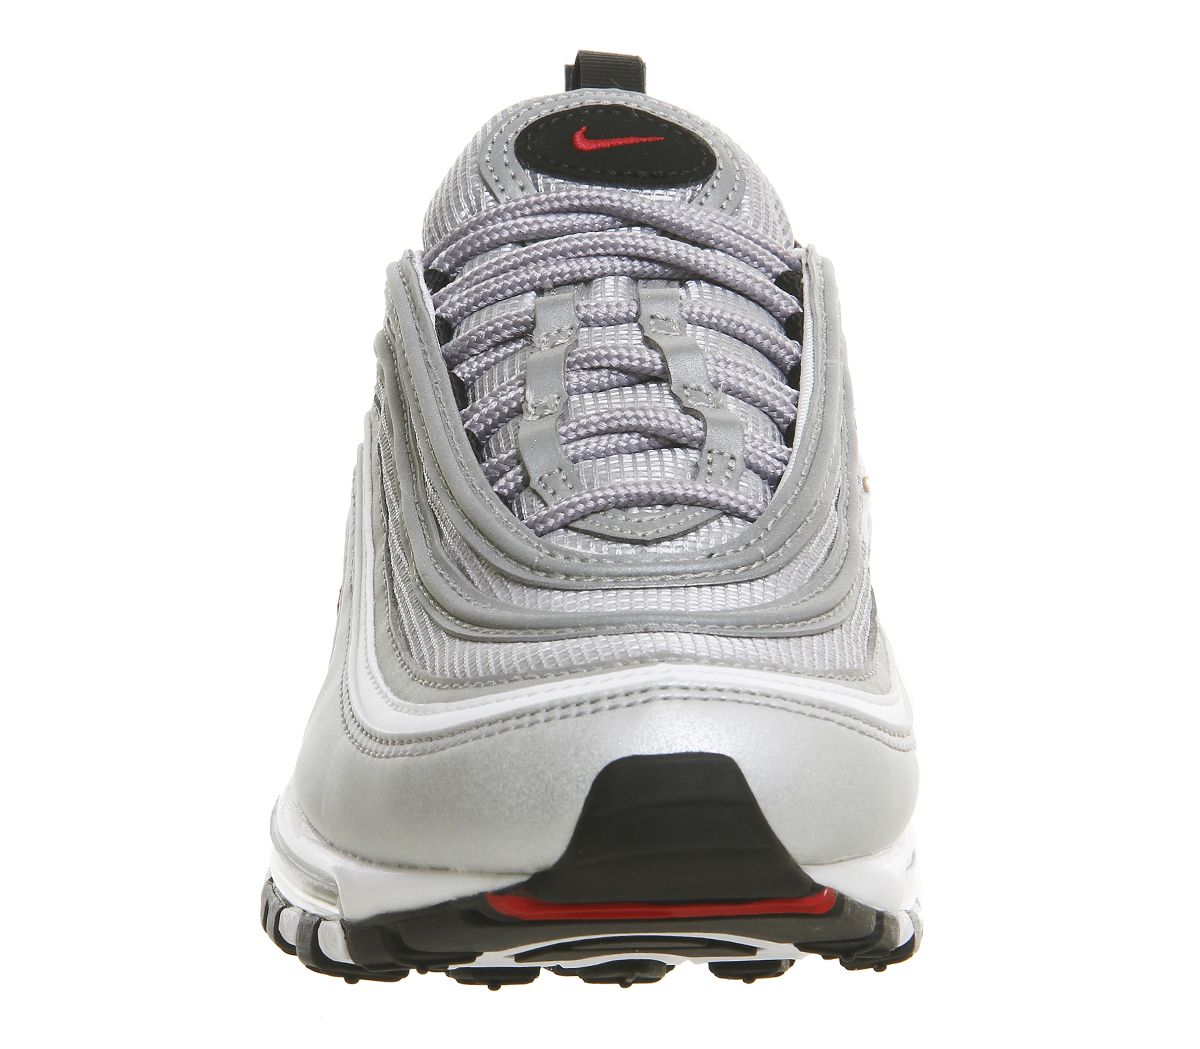 43d047a813 Nike Air Max 97 Mtlc Slv Var Red - Hers trainers